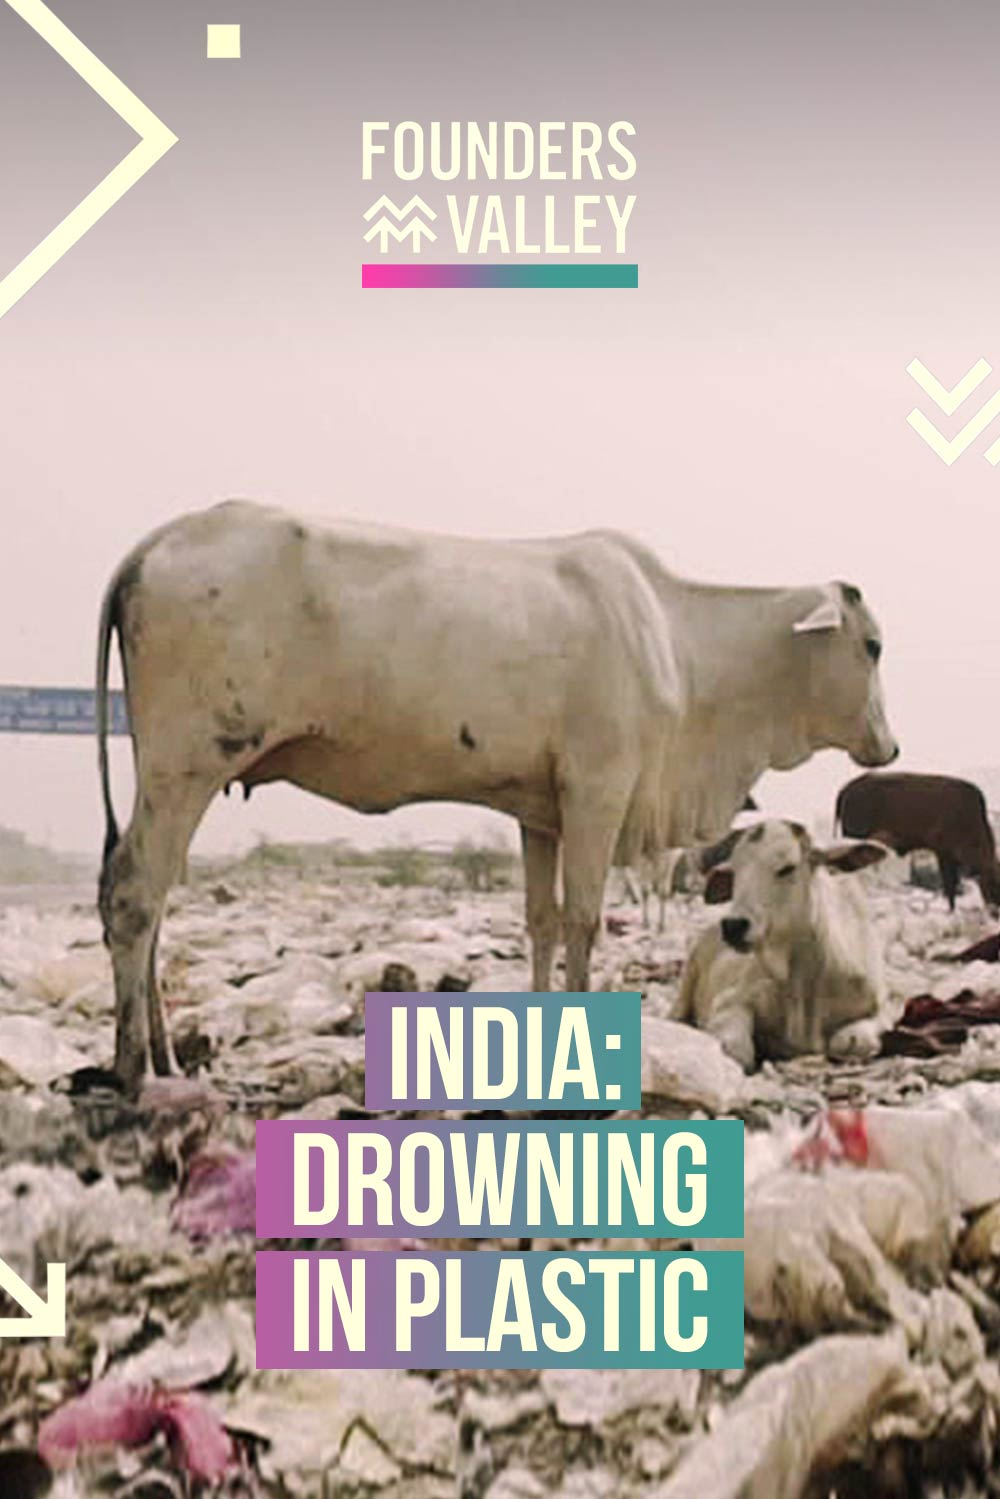 Founders' Valley: Drowning in Plastic, India